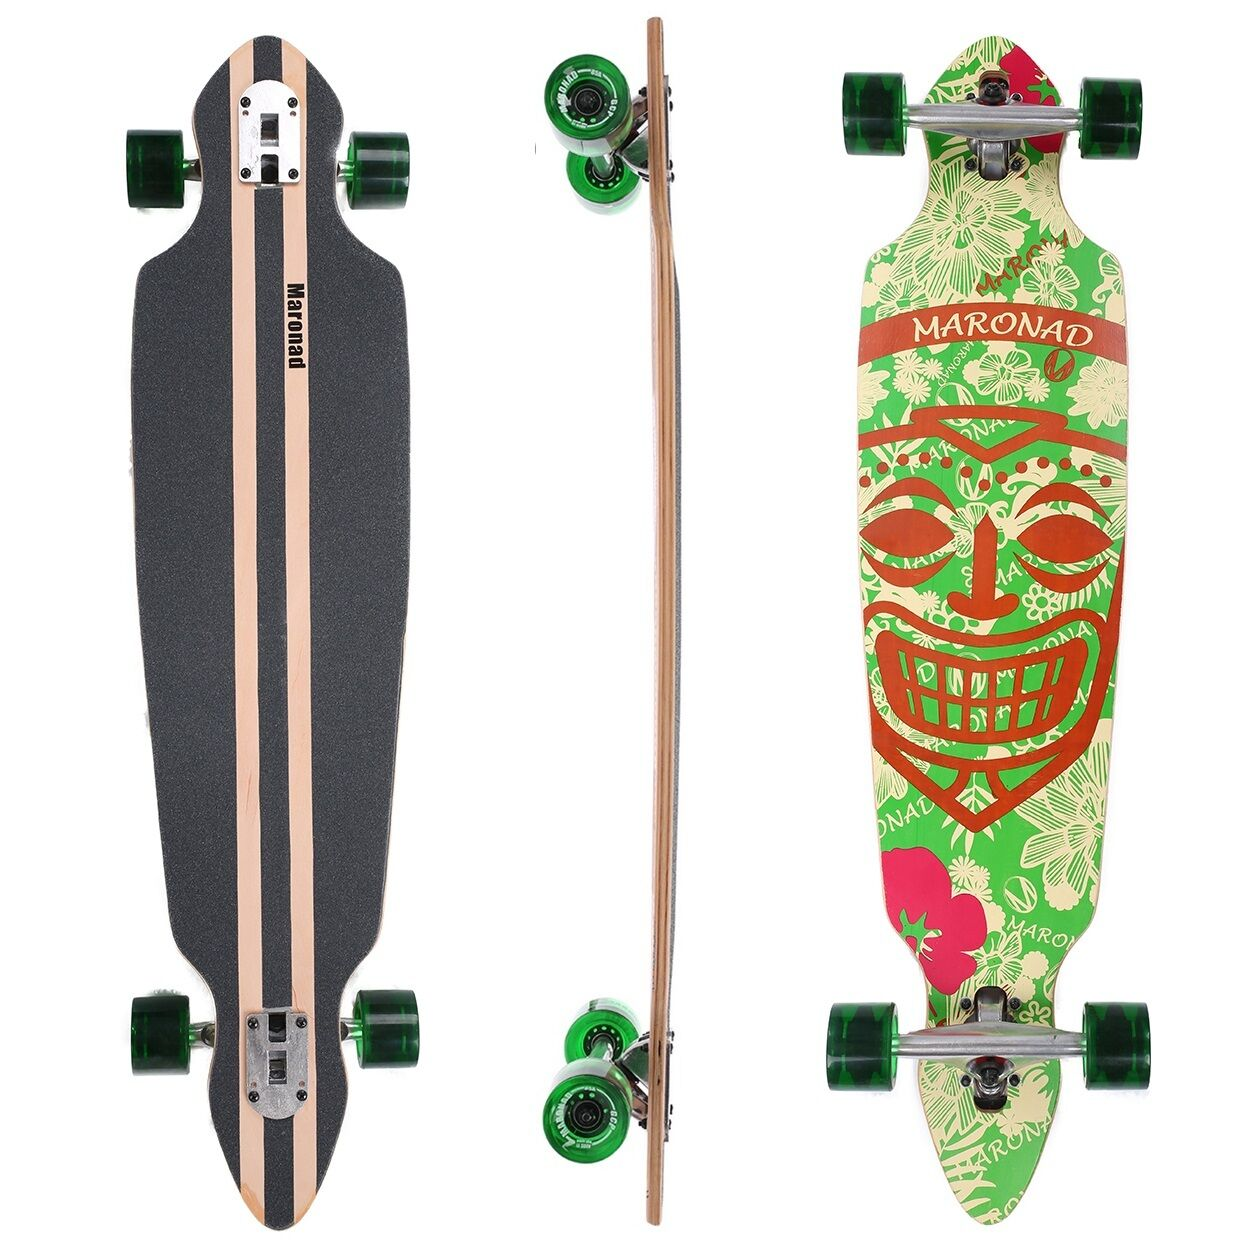 maronad longboard skateboard 41 drop through cruiser abec 11 komplett aruba eur 55 00. Black Bedroom Furniture Sets. Home Design Ideas